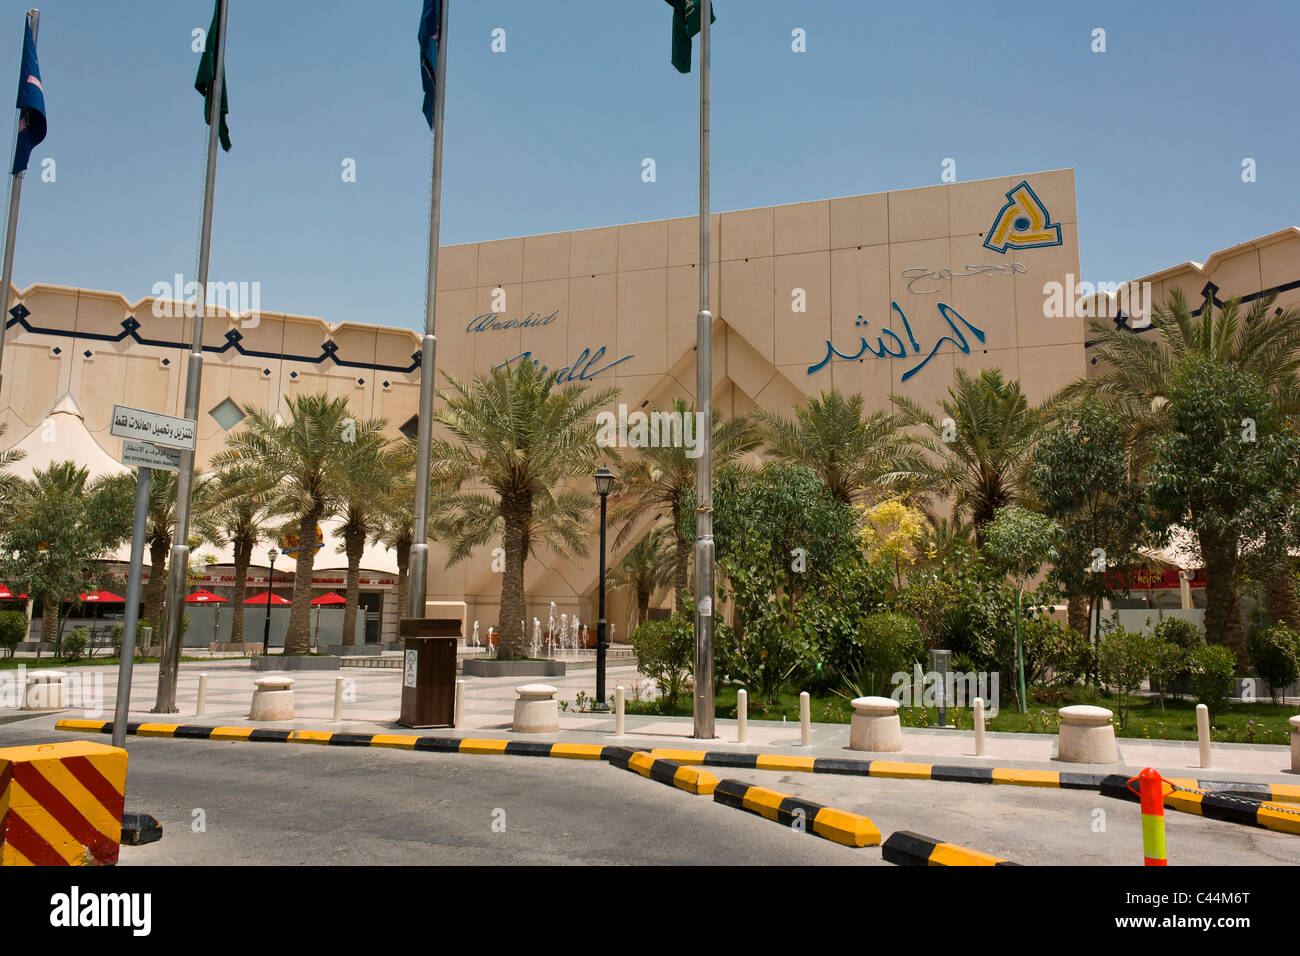 Centre commercial Al Rashed Mall, Khobar, Arabie saoudite. Photo Stock